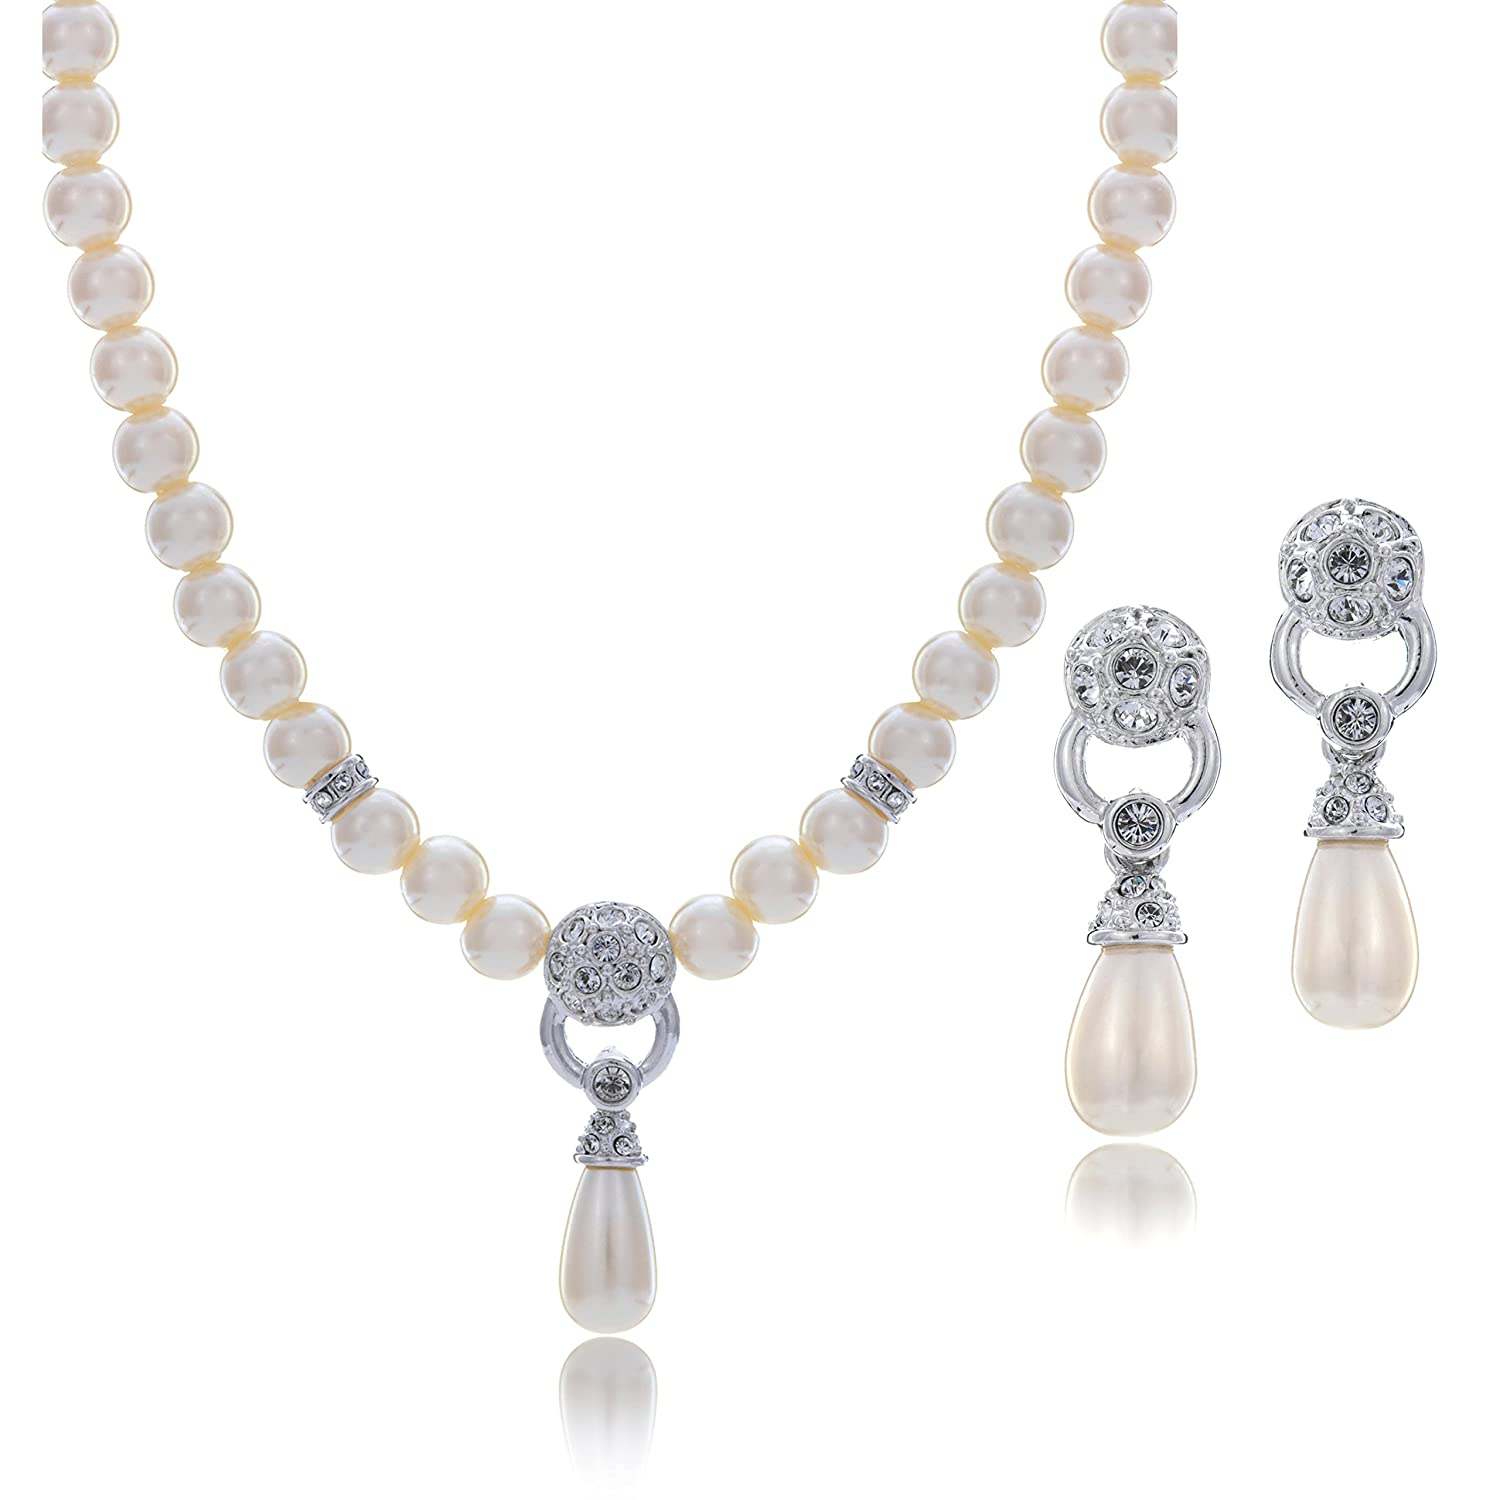 LAURA & ALEXANDER Simple and Lovely Simulated Pearl Necklace and Earring SET Features Teardrop Pearl